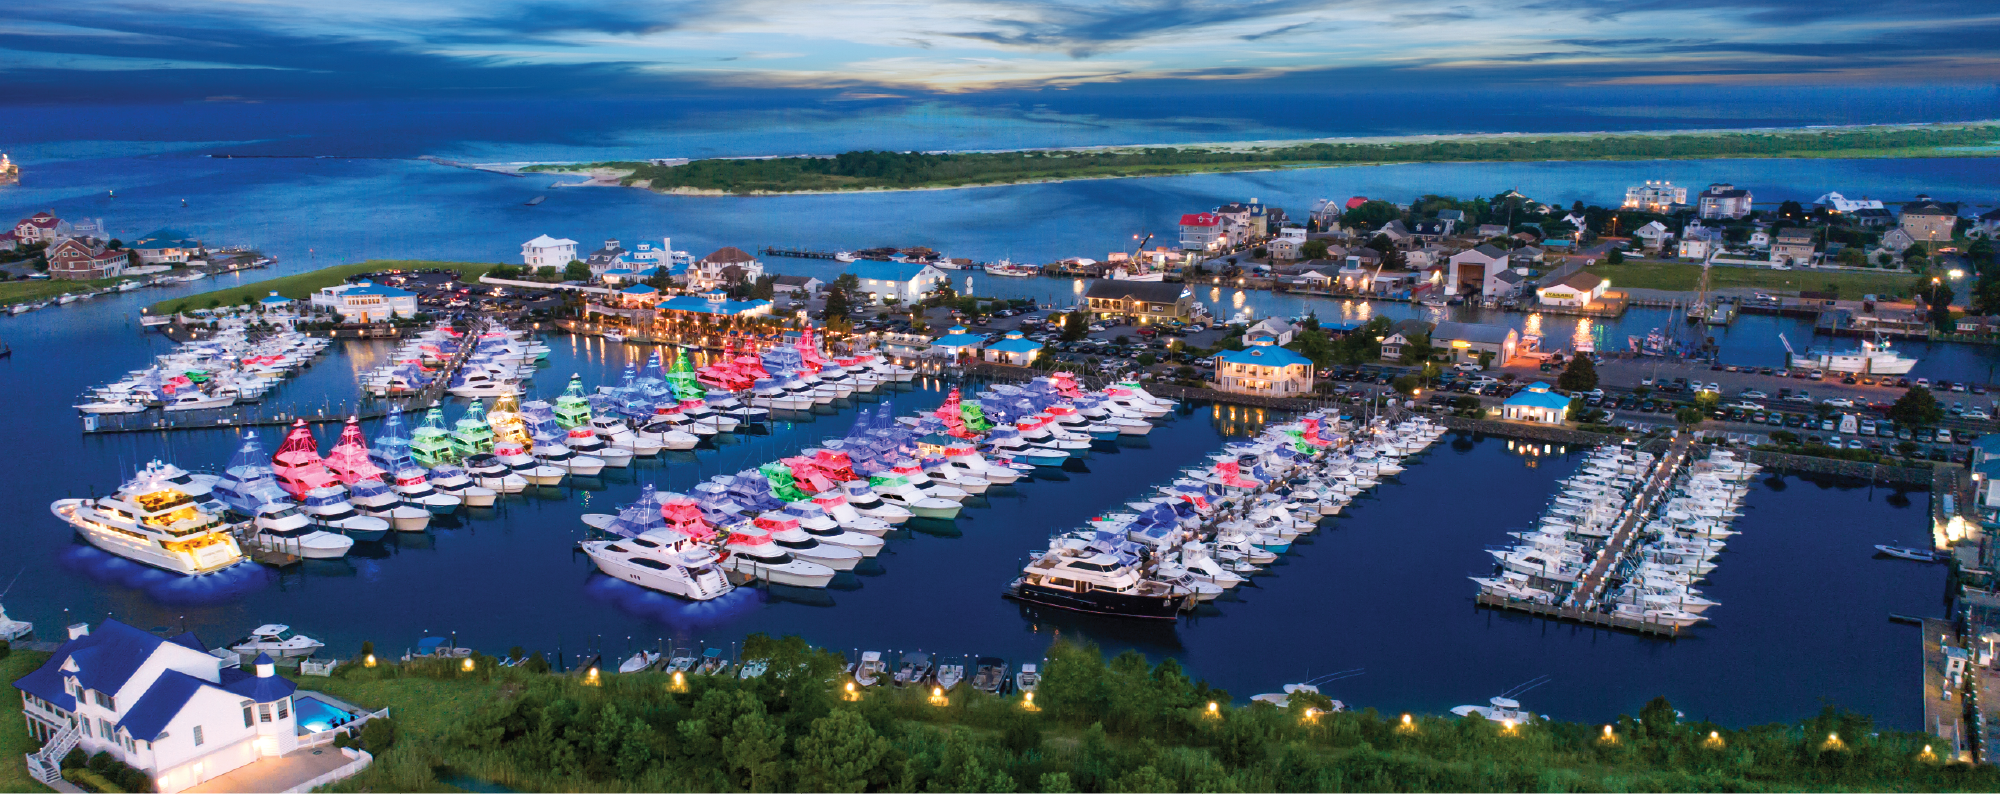 Aerial view of Sunset Marina at Dusk